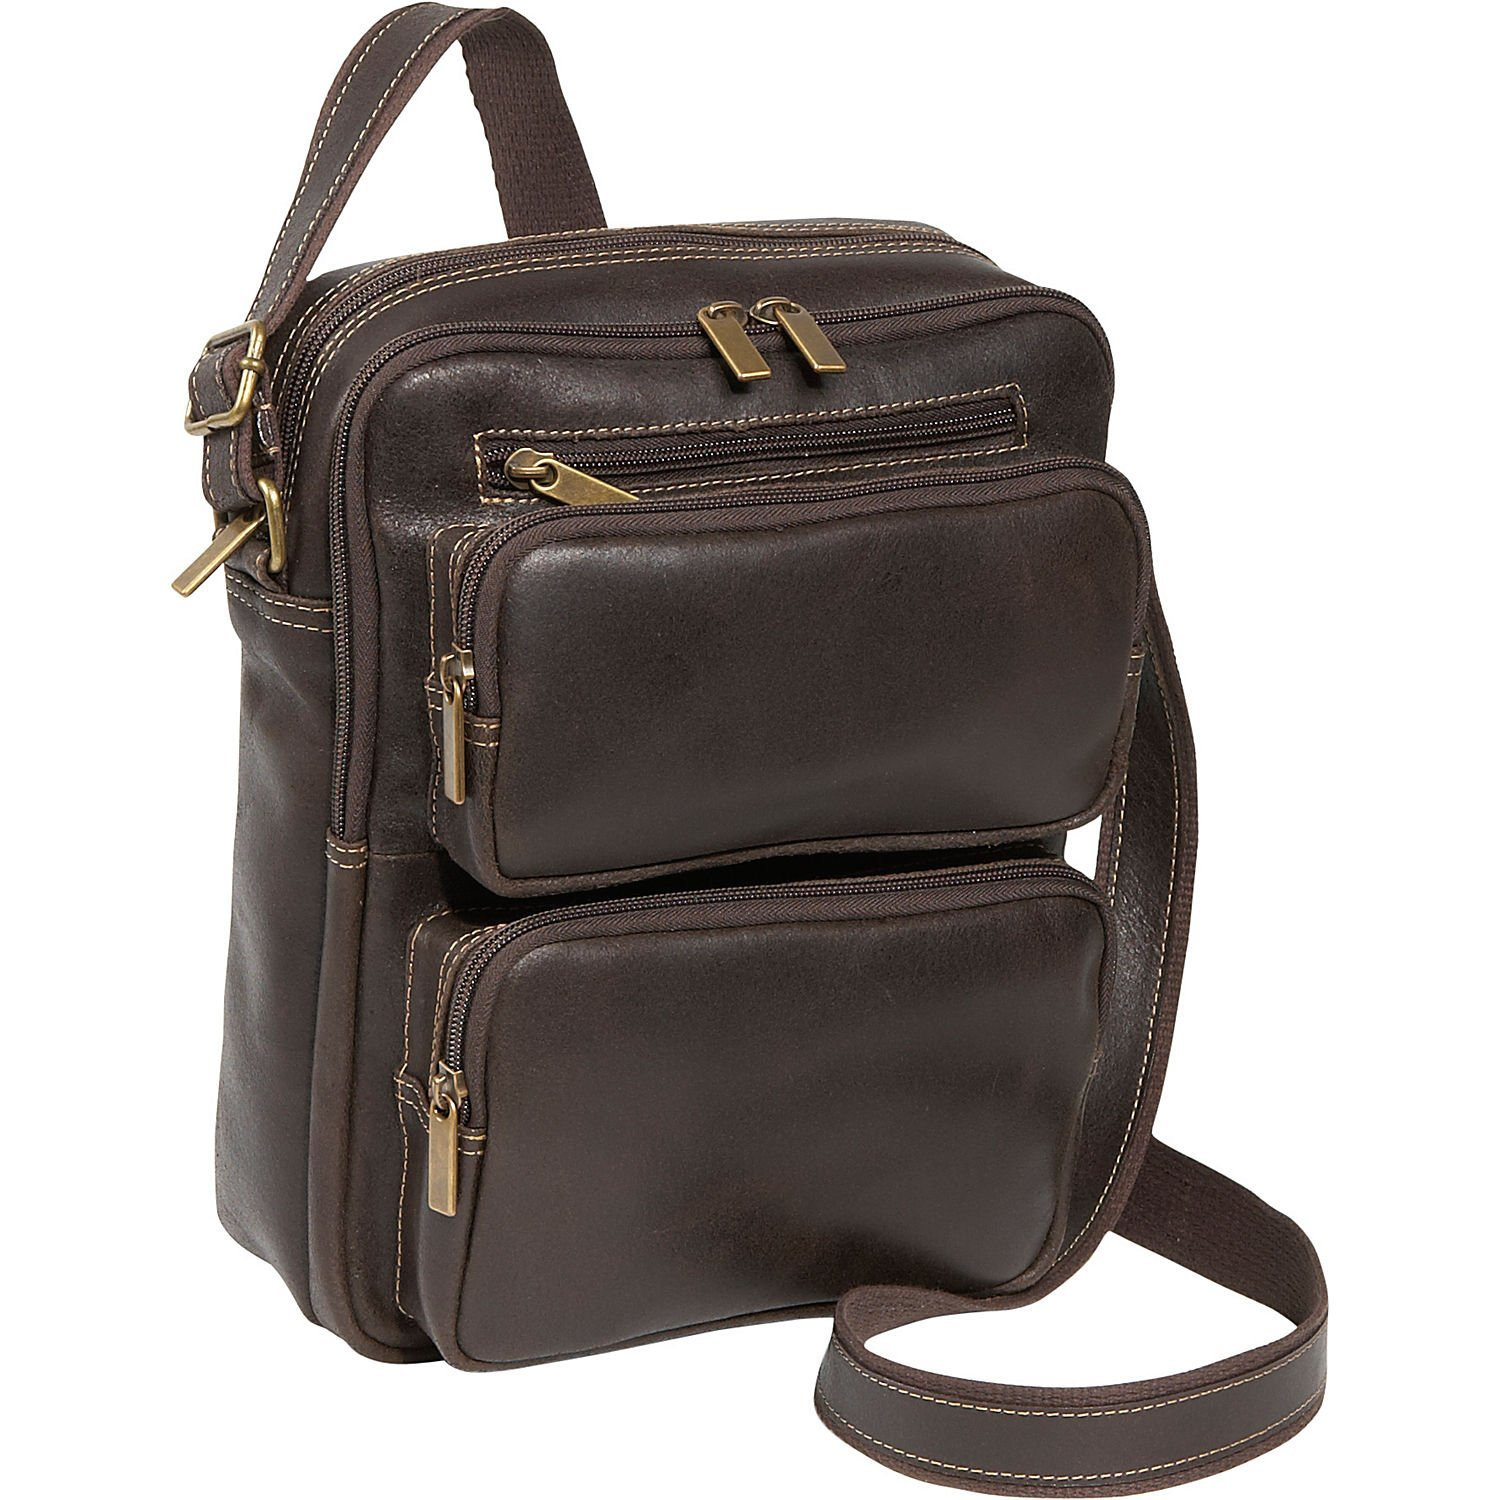 LeDonne DS-083-CHOC Distressed Multi Pocket iPad/E-Reader Men's Bag, Leather by LeDonne